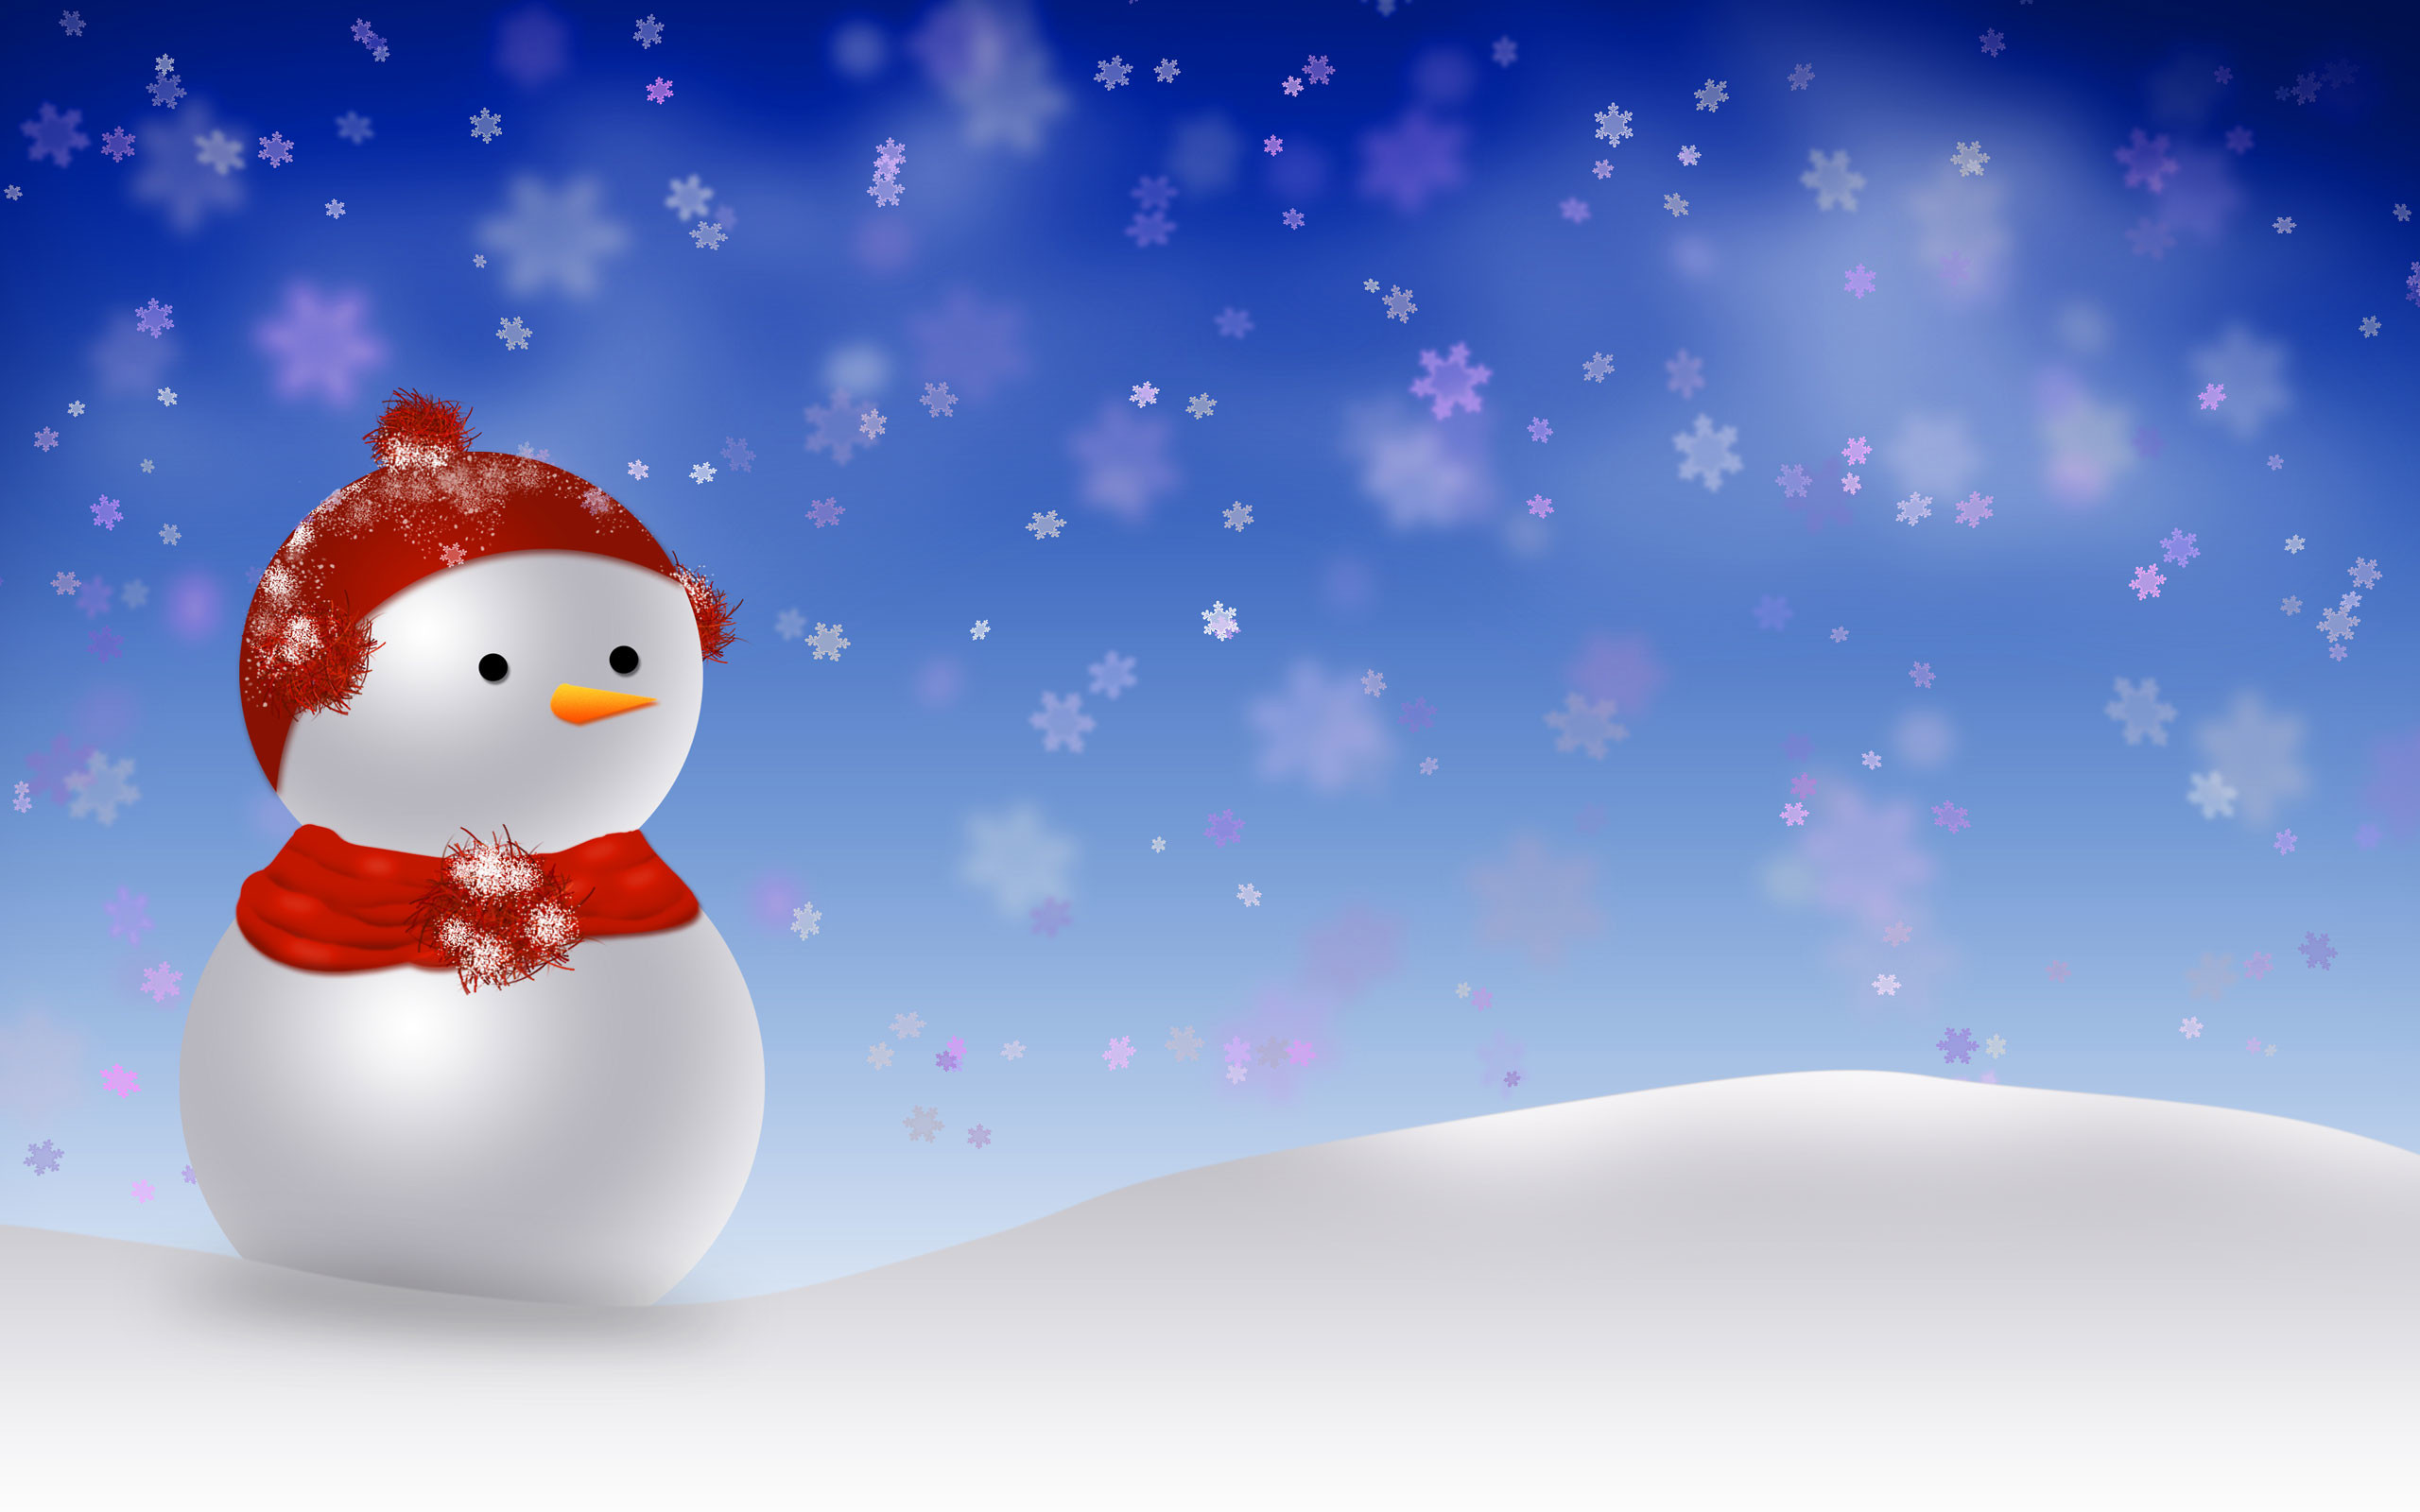 2560x1600 Cute Christmas Backgrounds Cute Christmas Desktop Backgrounds